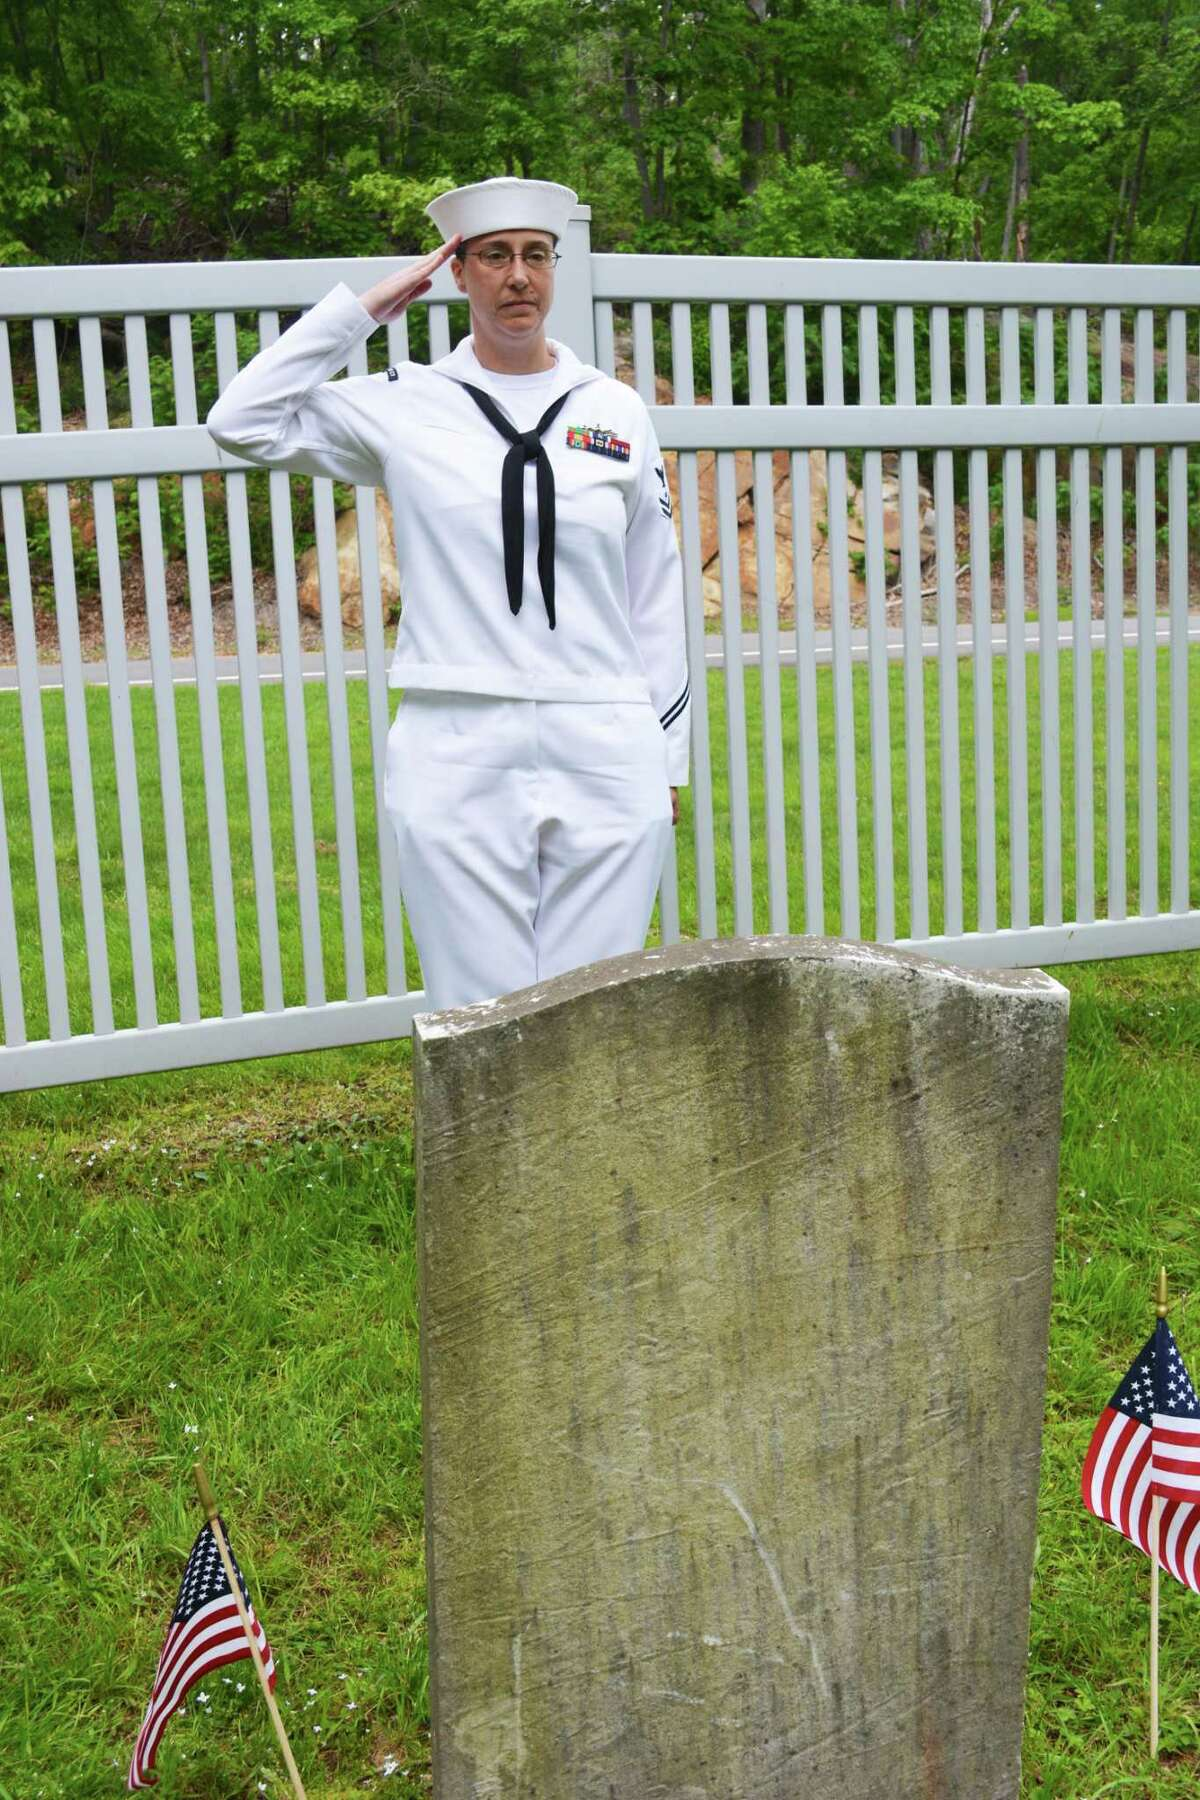 A special blessing was offered Friday in Maromas Cemetery on Aircraft Road at the gravestone of Pvt. Daniel Otis, the city's youngest service member. He left his family farm in Maromas in August 1862 to serve in Company B at 15, saying he was 18.